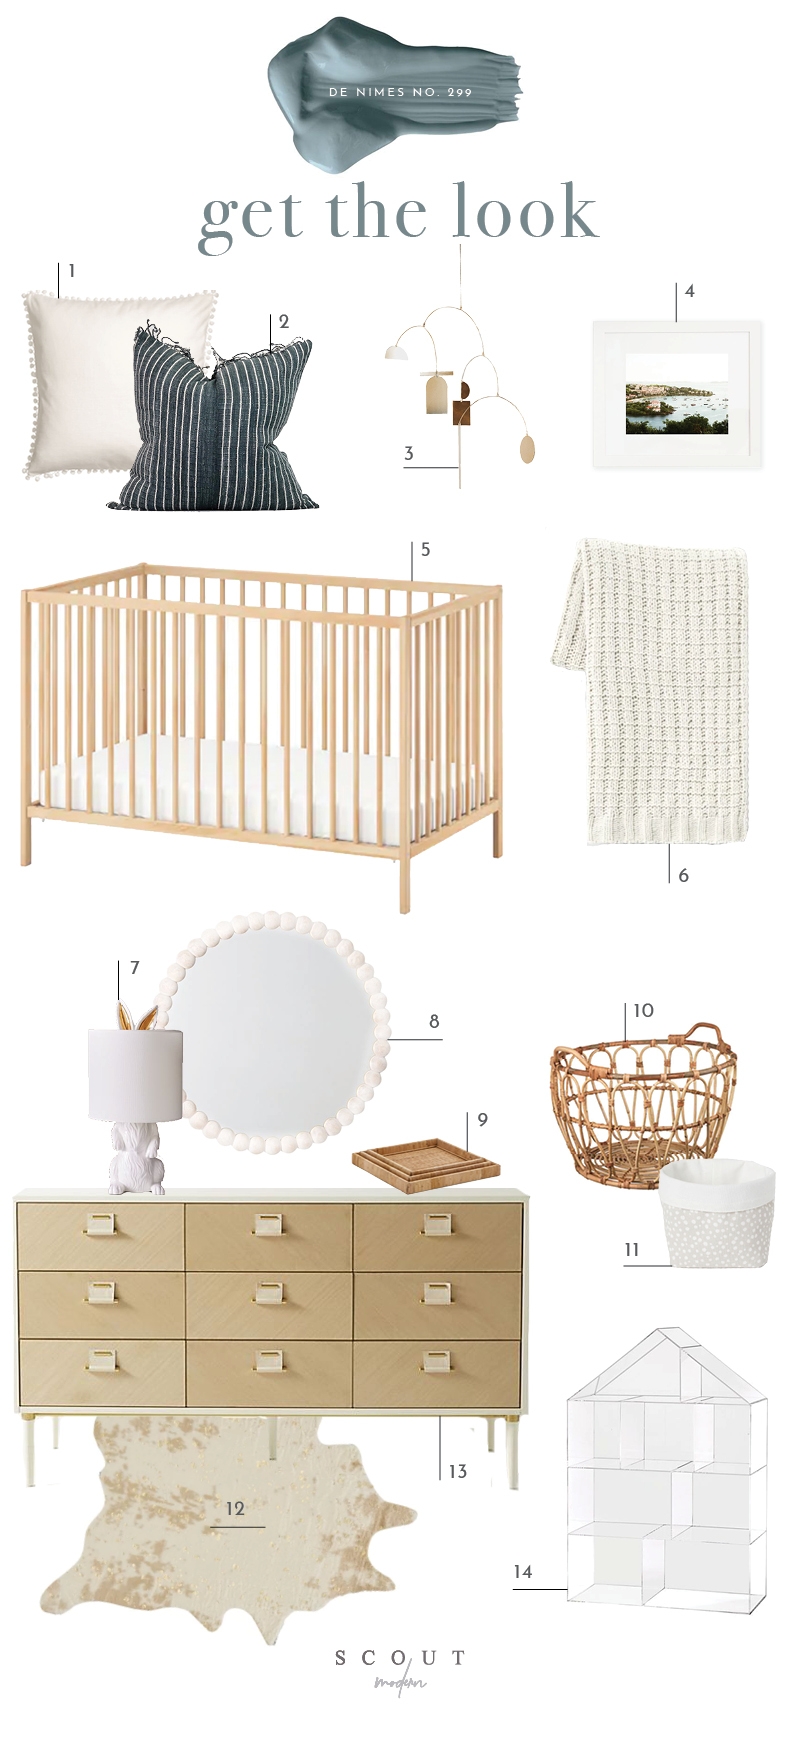 1.  Pom Pom Pillow  | 2.  Striped Pillow  | 3.  Brass Mobile  | 4.  St. John Print  | 5.  Crib  | 6.  Chenile Throw Blanket  | 7.  Rabbit Table Lamp  | 8.  Wood Ball Mirror  | 9.  Set of Woven Trays  | 10.  Basket  | 11.  Fabric Basket  | 12.  Faux Hide Rug  | 13.  Nine Drawer Dresser  | 14.  Acrylic House Book Shelf